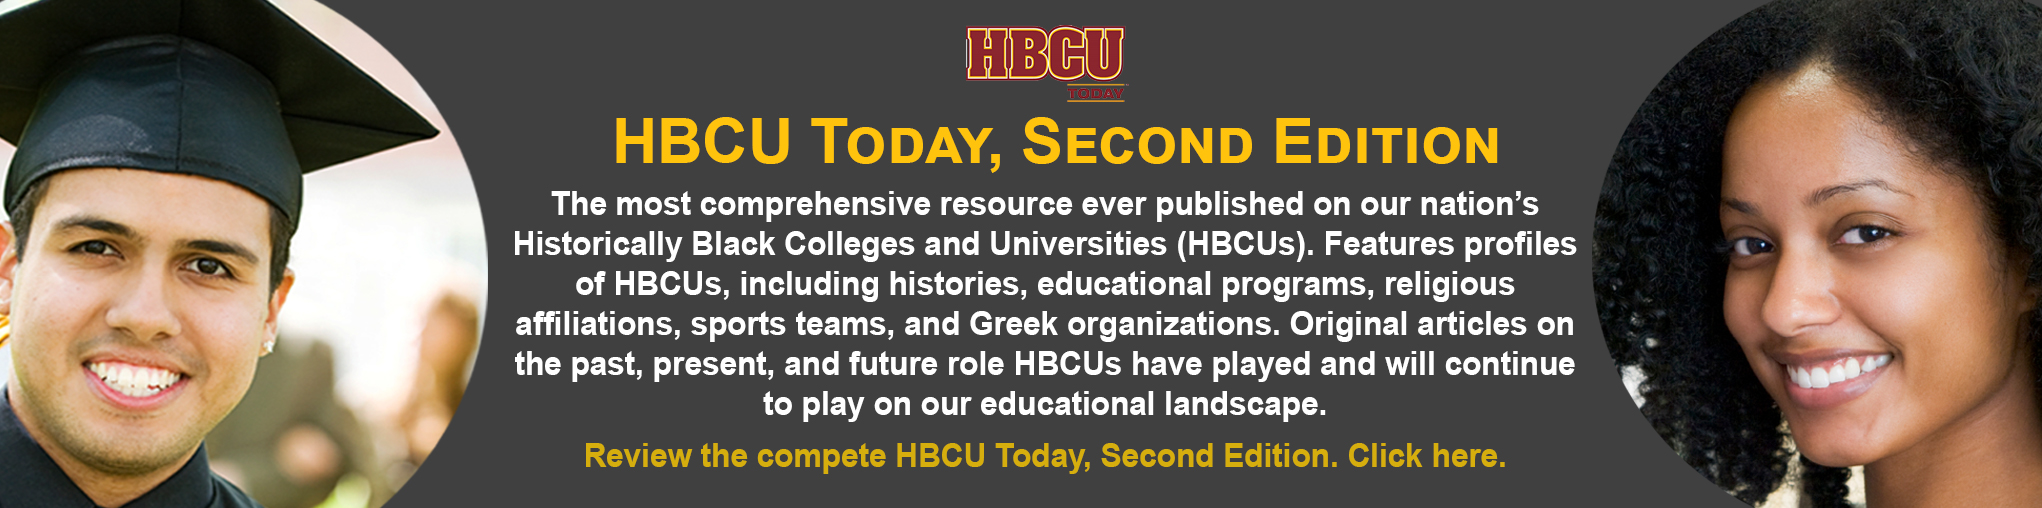 Download HBCU Today, Second Edition